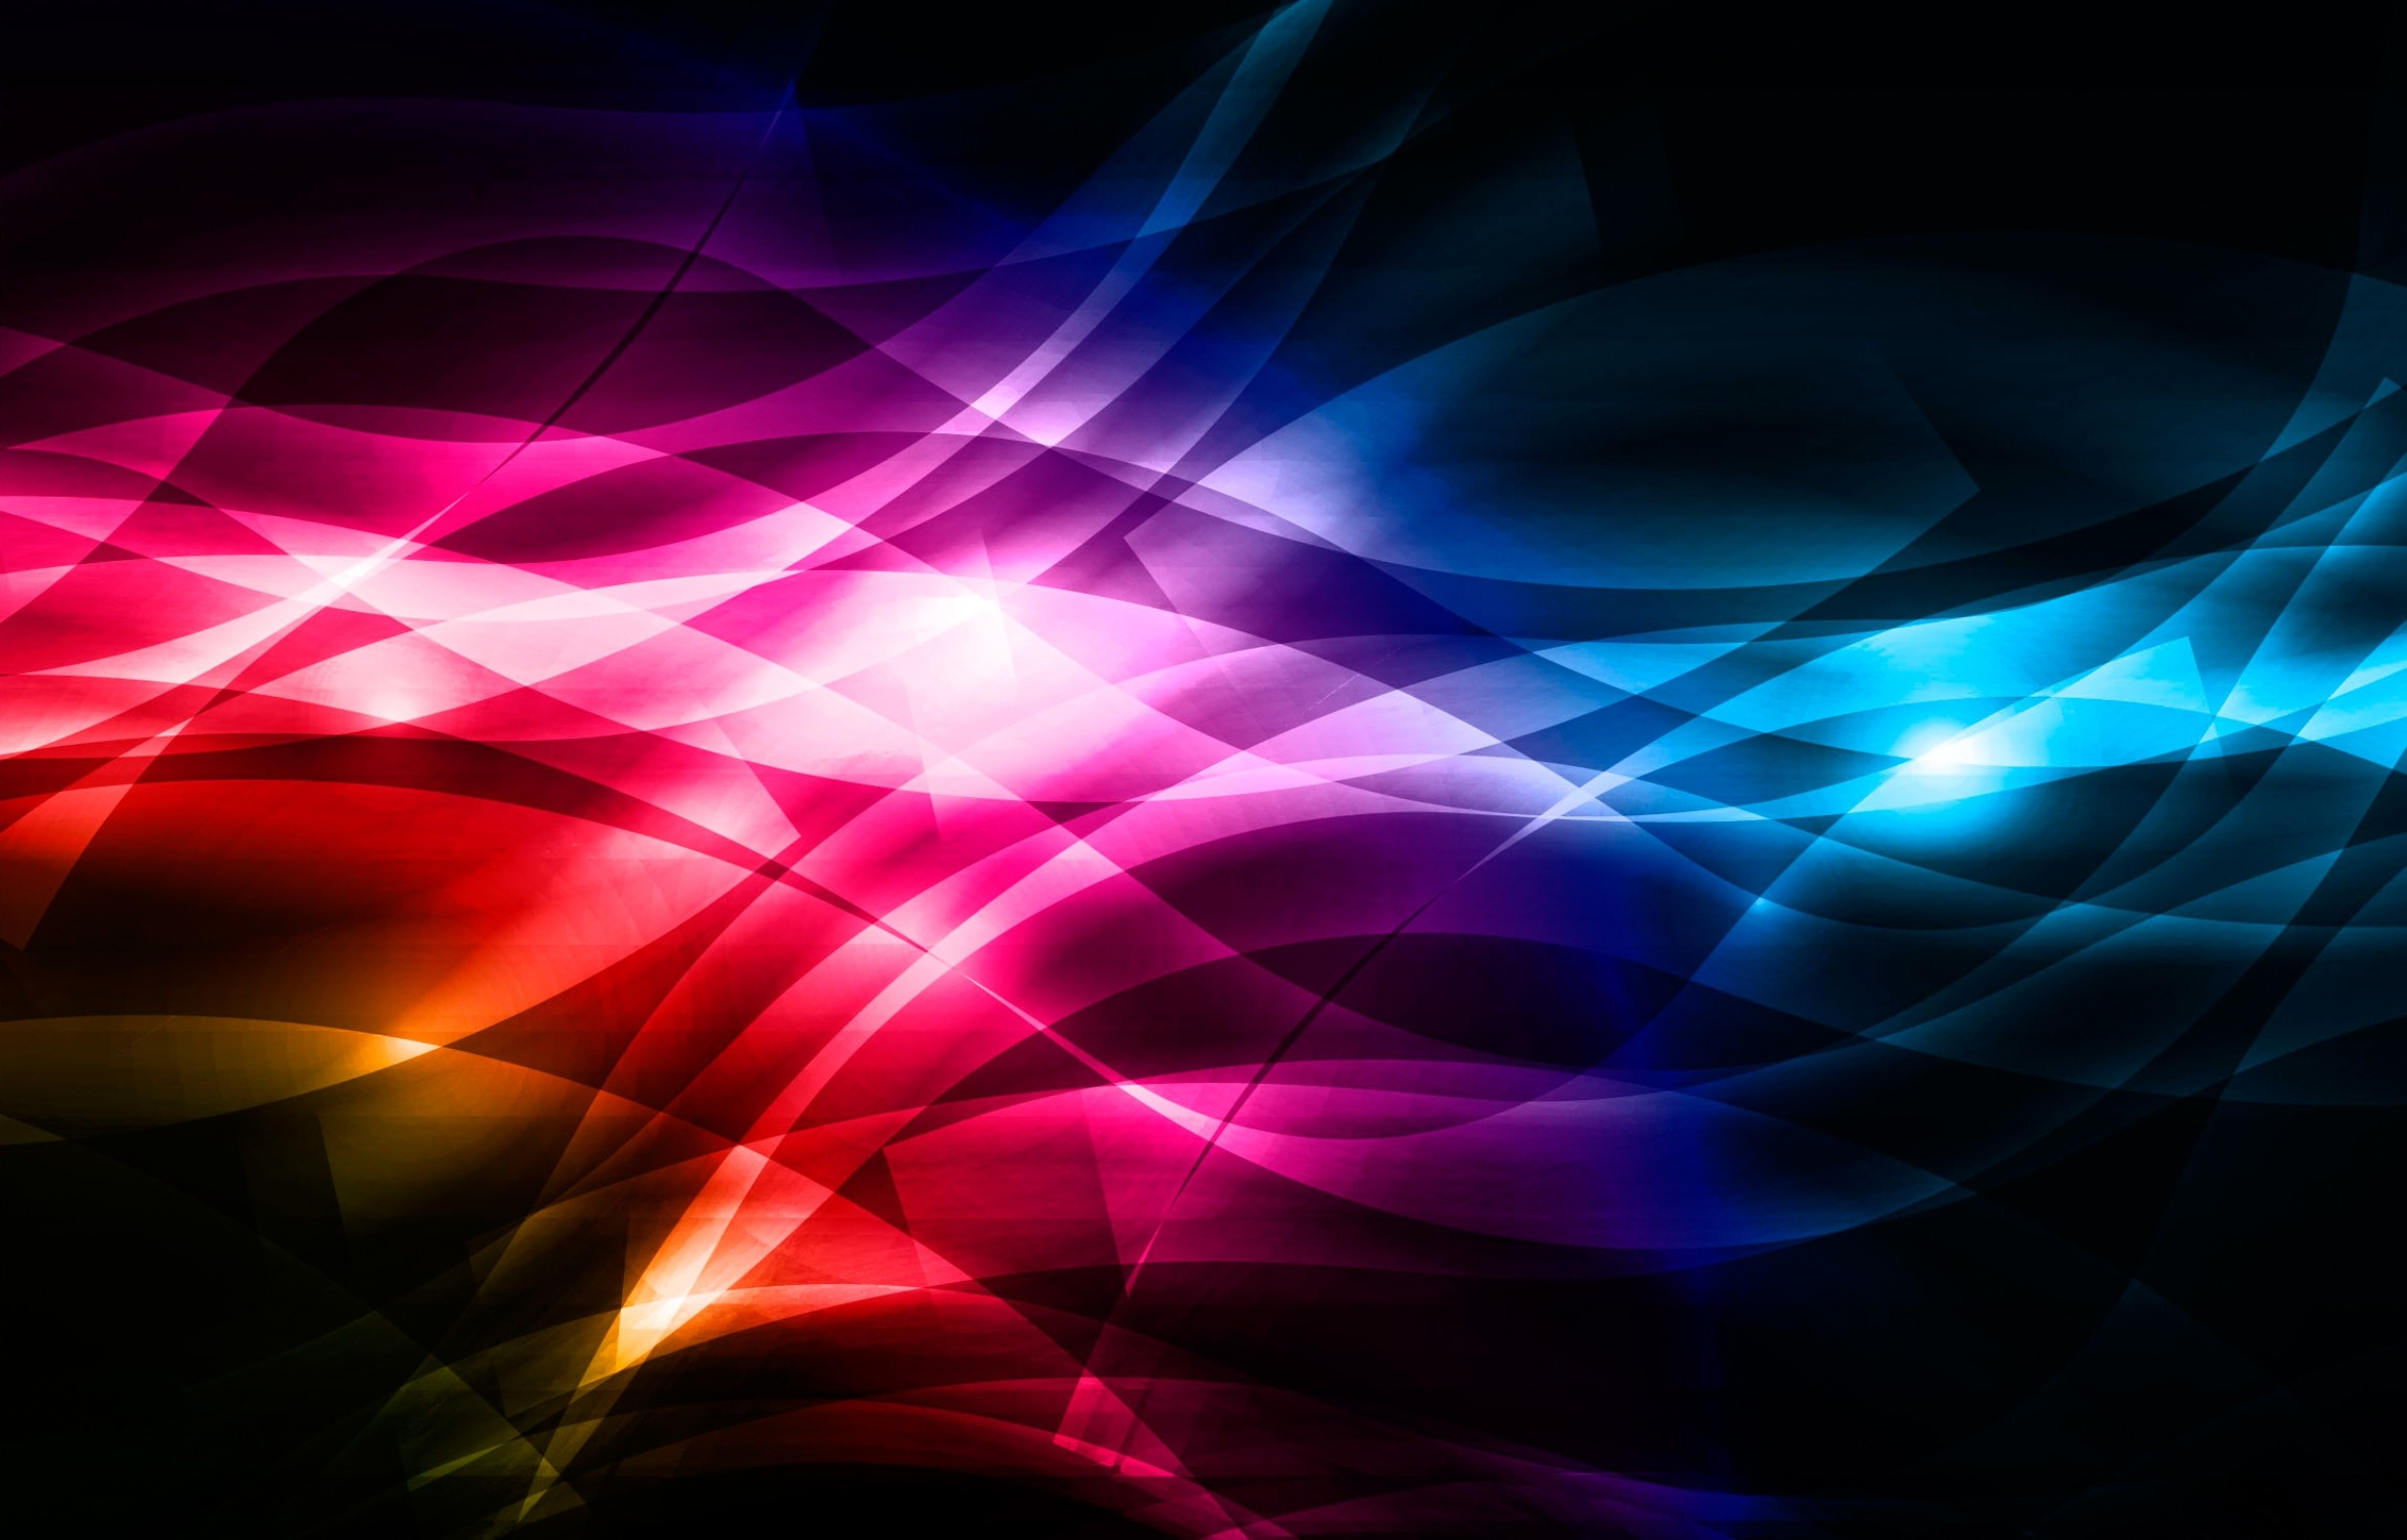 Abstract Colorful Background #2212 HD Wallpaper Res .